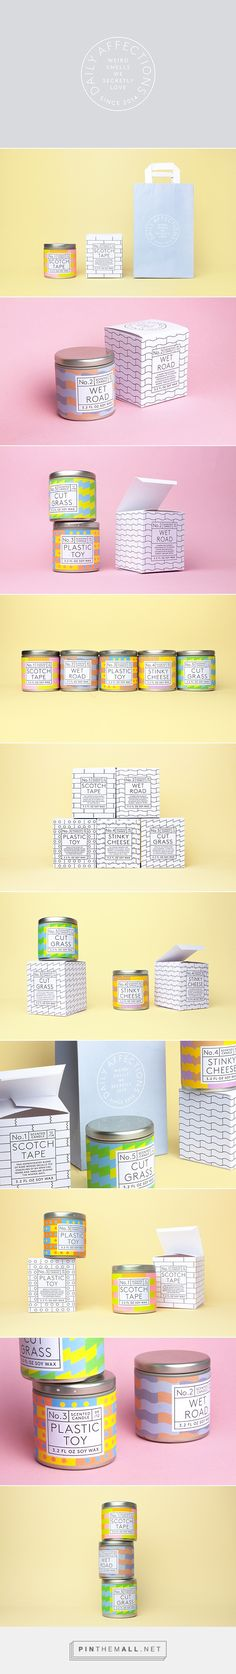 Daily Affections packaging designed by Albert J. Son PD—hehe these are so goofy! Candle Packaging, Soap Packaging, Pretty Packaging, Cosmetic Packaging, Brand Packaging, Packaging Ideas, Graphic Design Branding, Corporate Design, Label Design